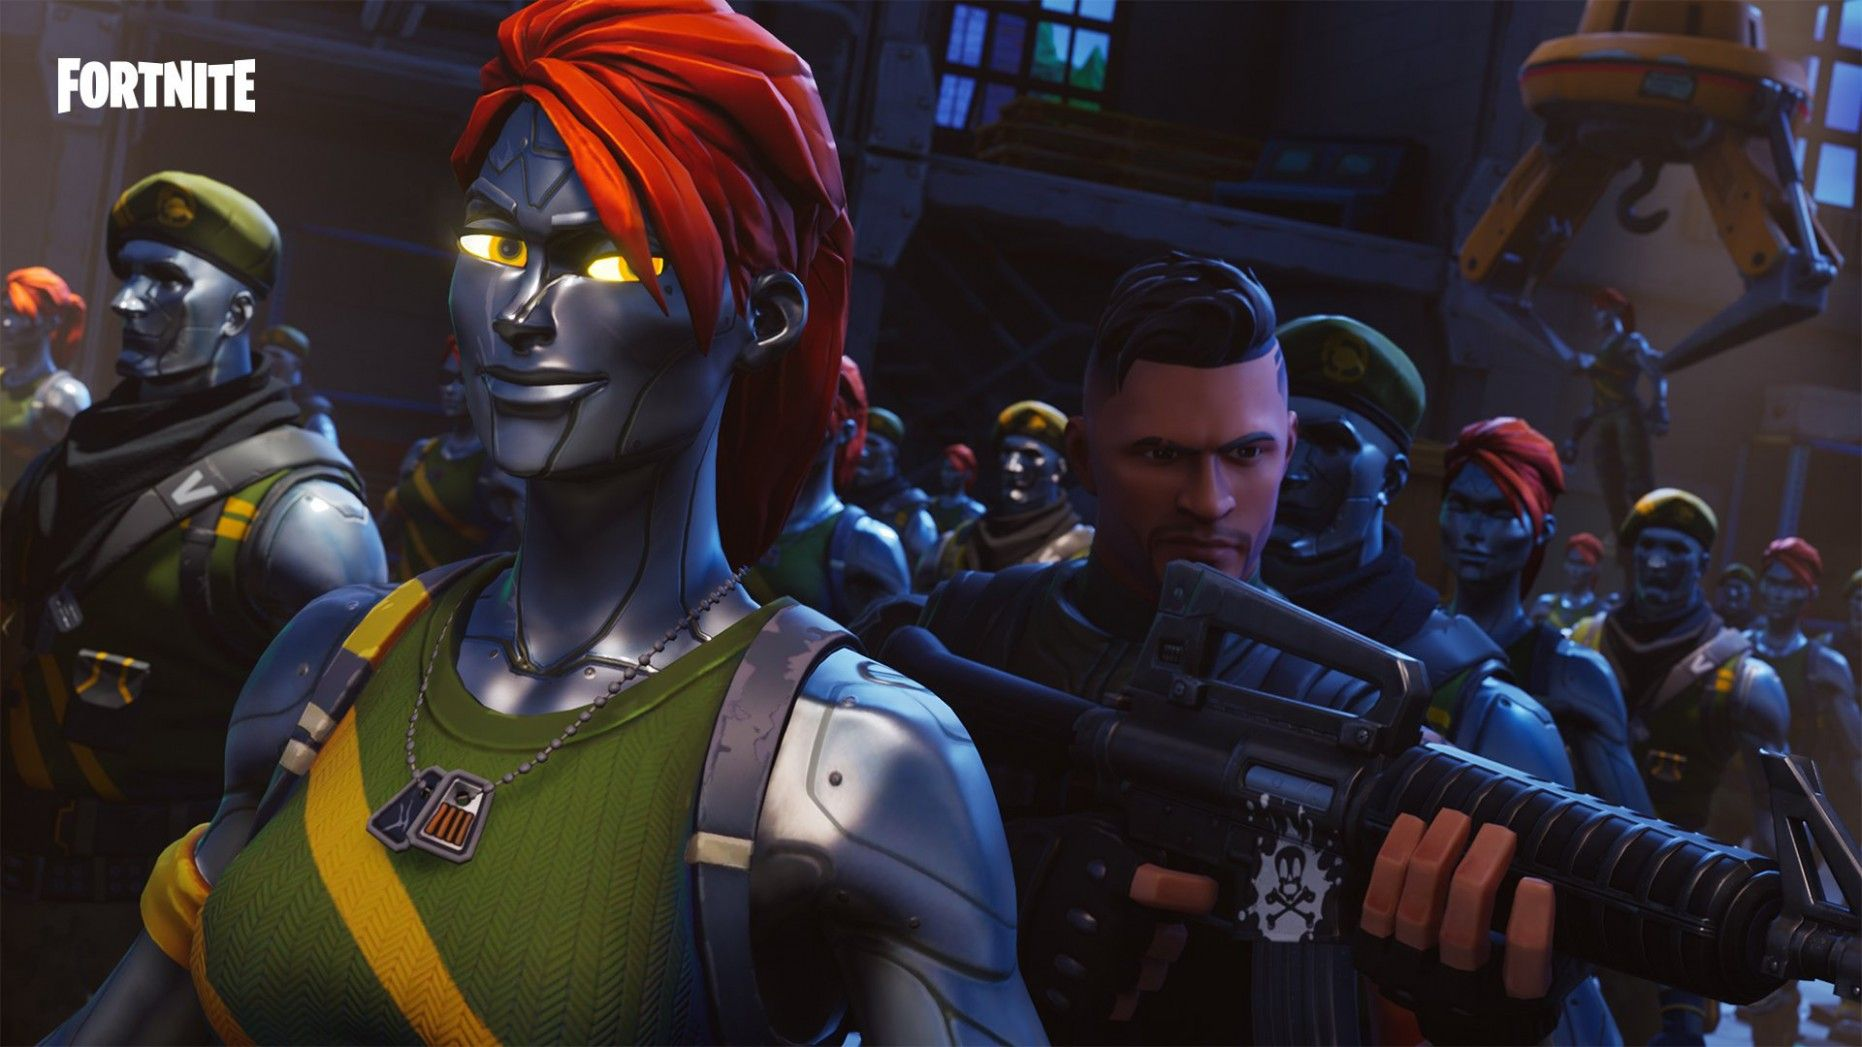 20 Things You Should Do In Fortnite Vertex Wallpaper | Fortnite Vertex  Wallpaper Https:/